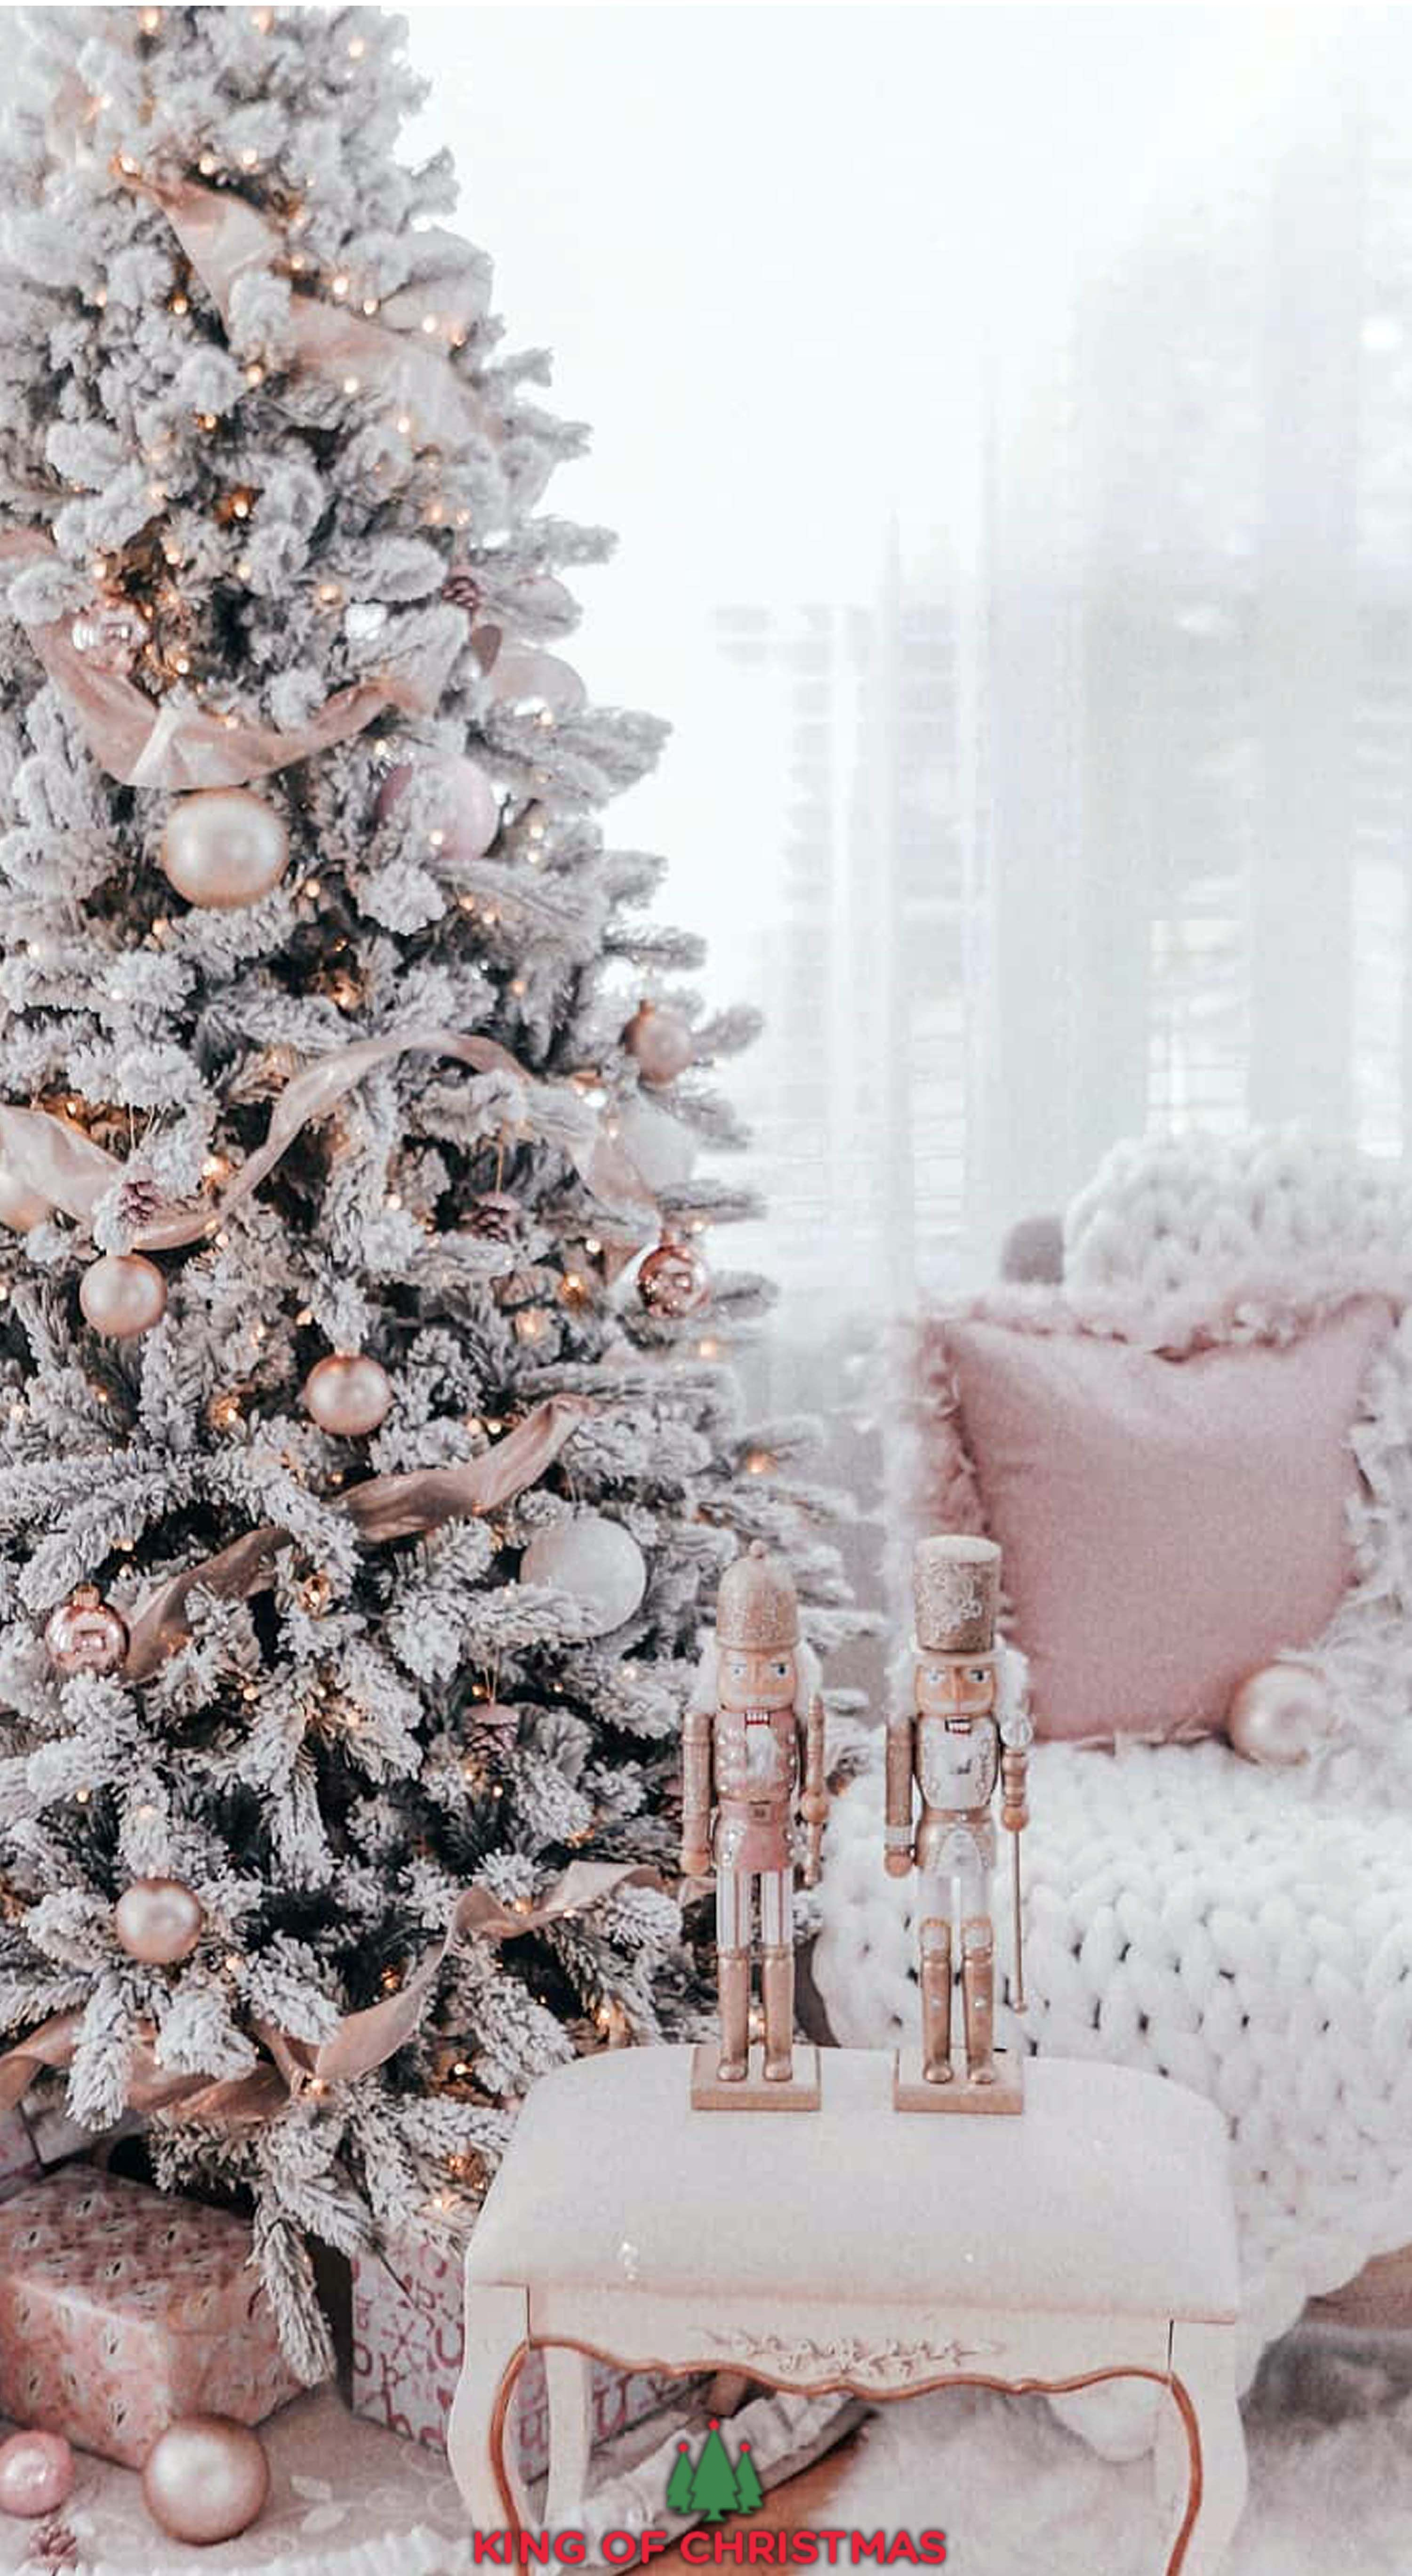 Wow this is just breathtaking! Christmas tree from kingofchristmas.com #freeshippingusa #christmas#trees #holidays #happyholidays#happyholiday #christmastime#christmastree #christmasdecor#christmasdecorations #decoration#holidaydecoration #hugechristmastree#bigchristmastree #christmasdecor#christmasdecoration #holiday#holidaydecorations #flockedtree#flockedchristmastree